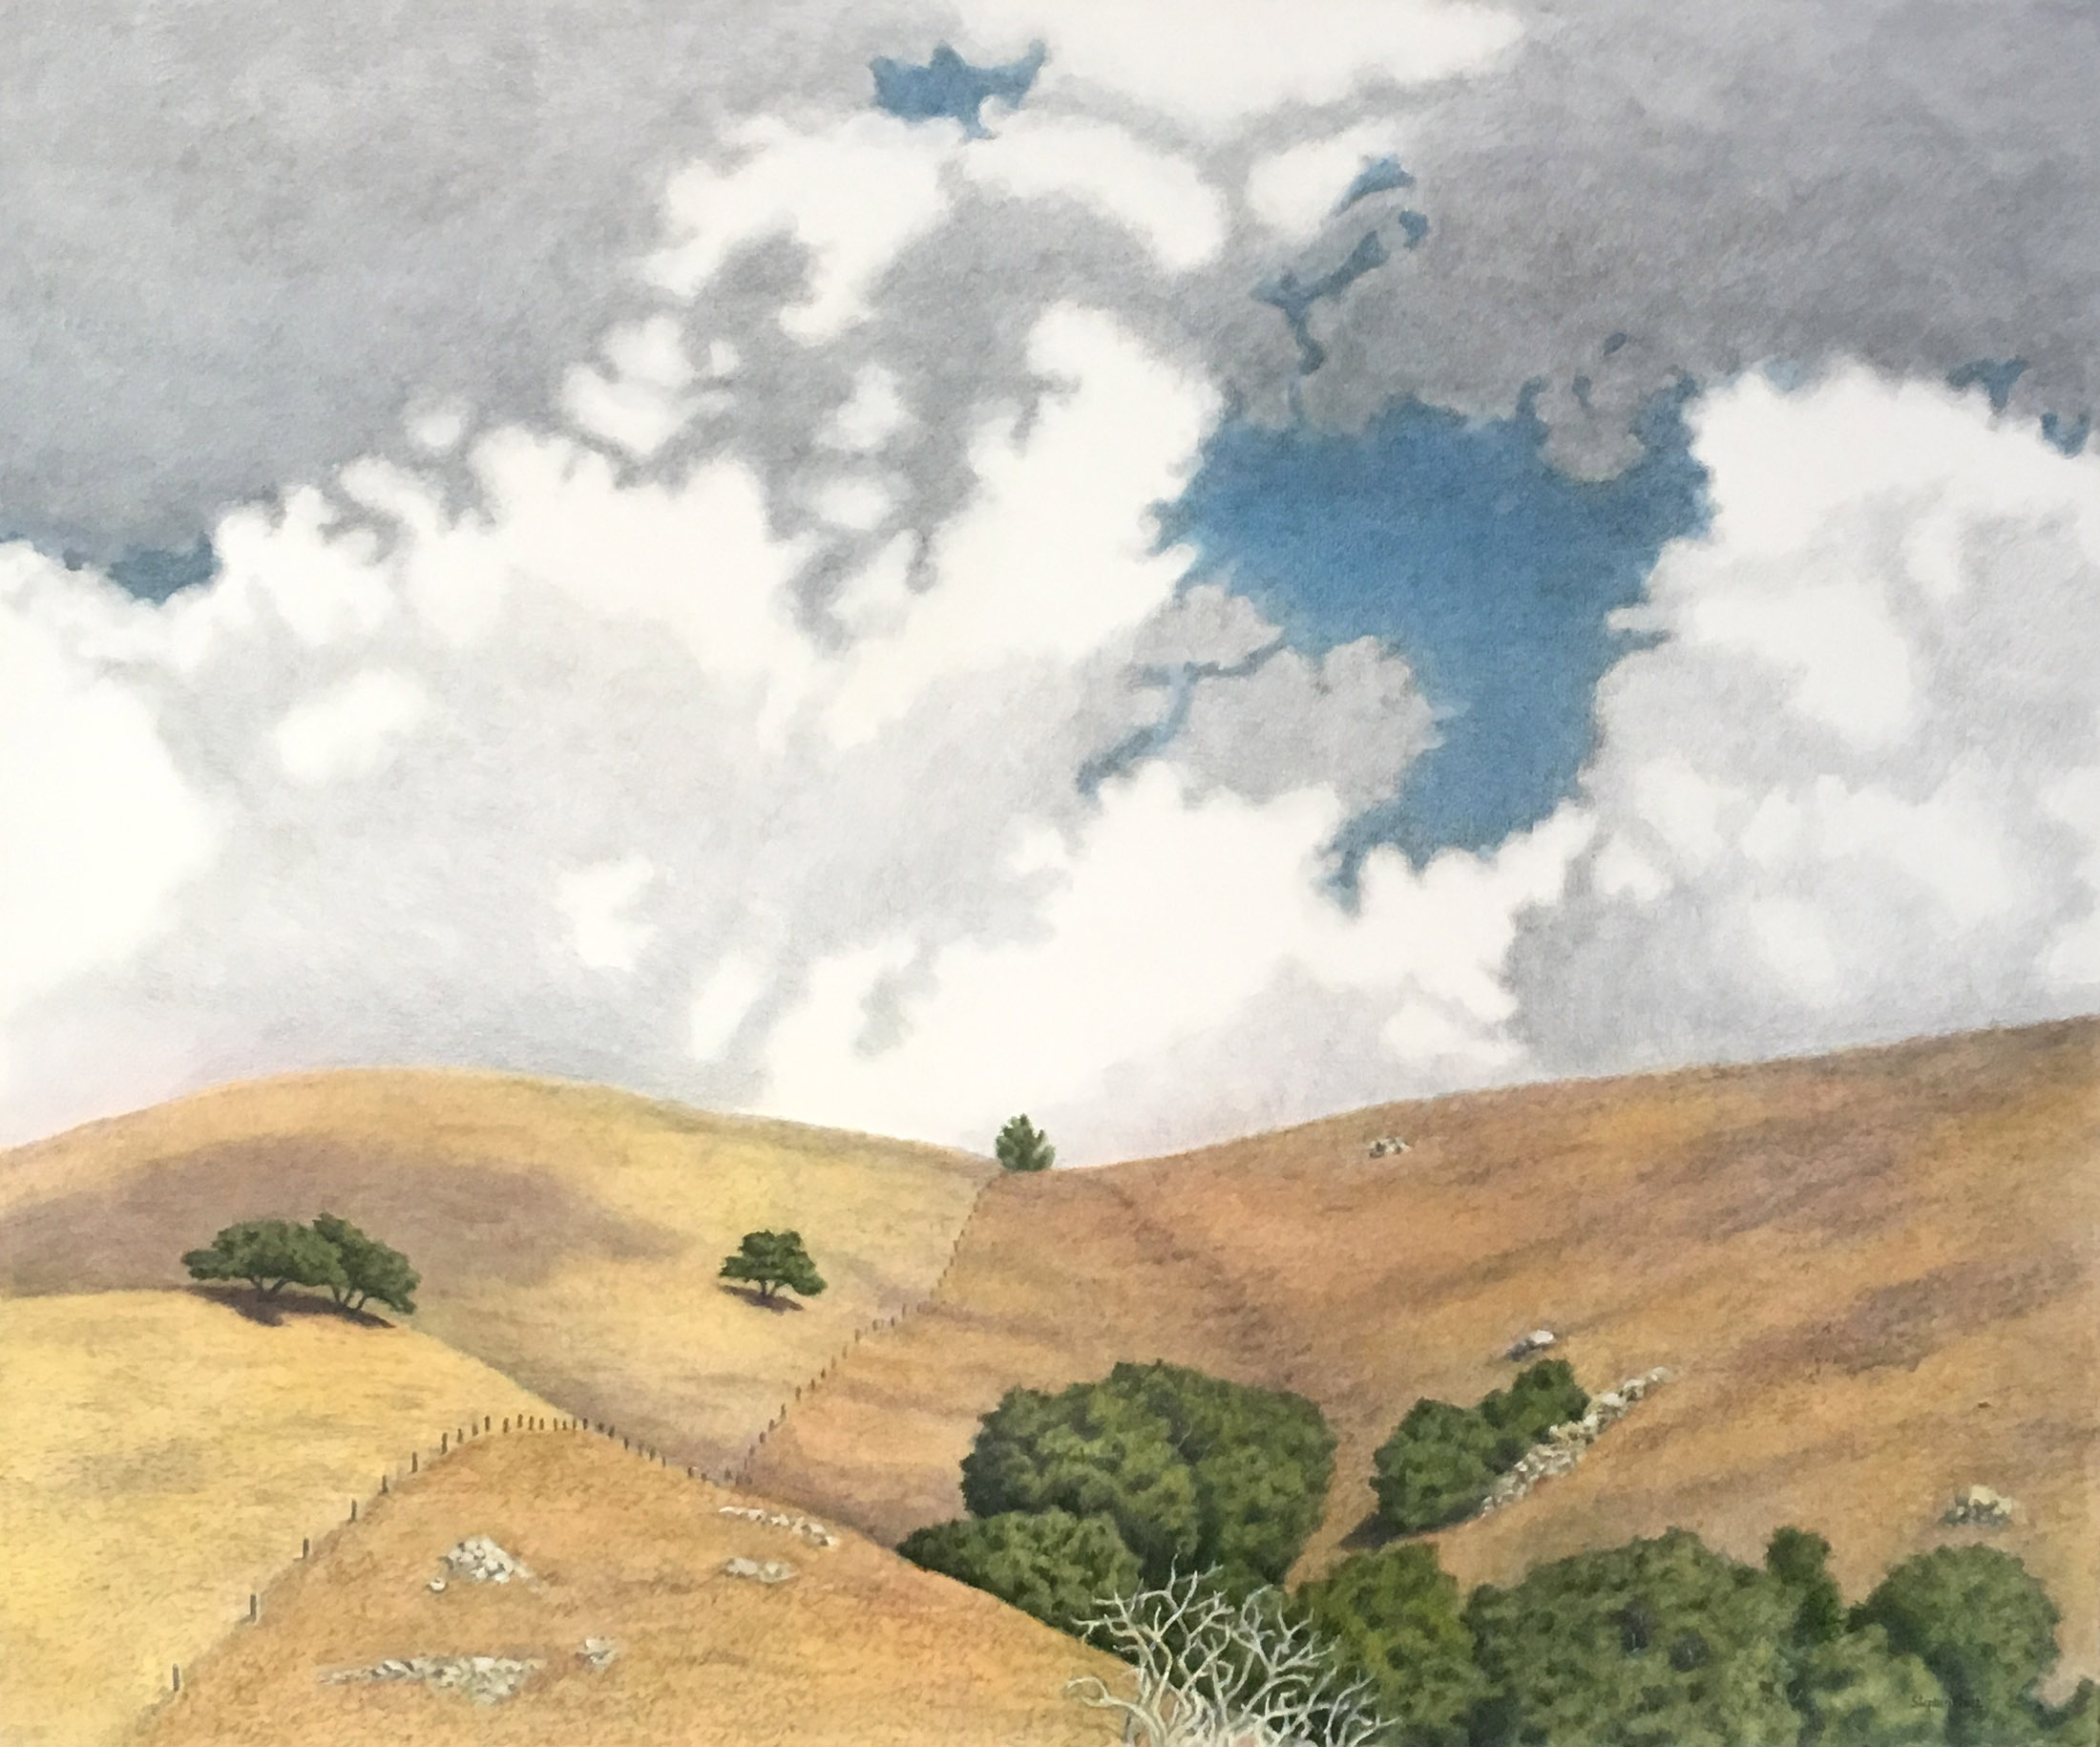 """After The Storm, graphite and polymer glazes on canvas, 60"""" x 72'"""" $7,000 Available to view at Sausalito location"""